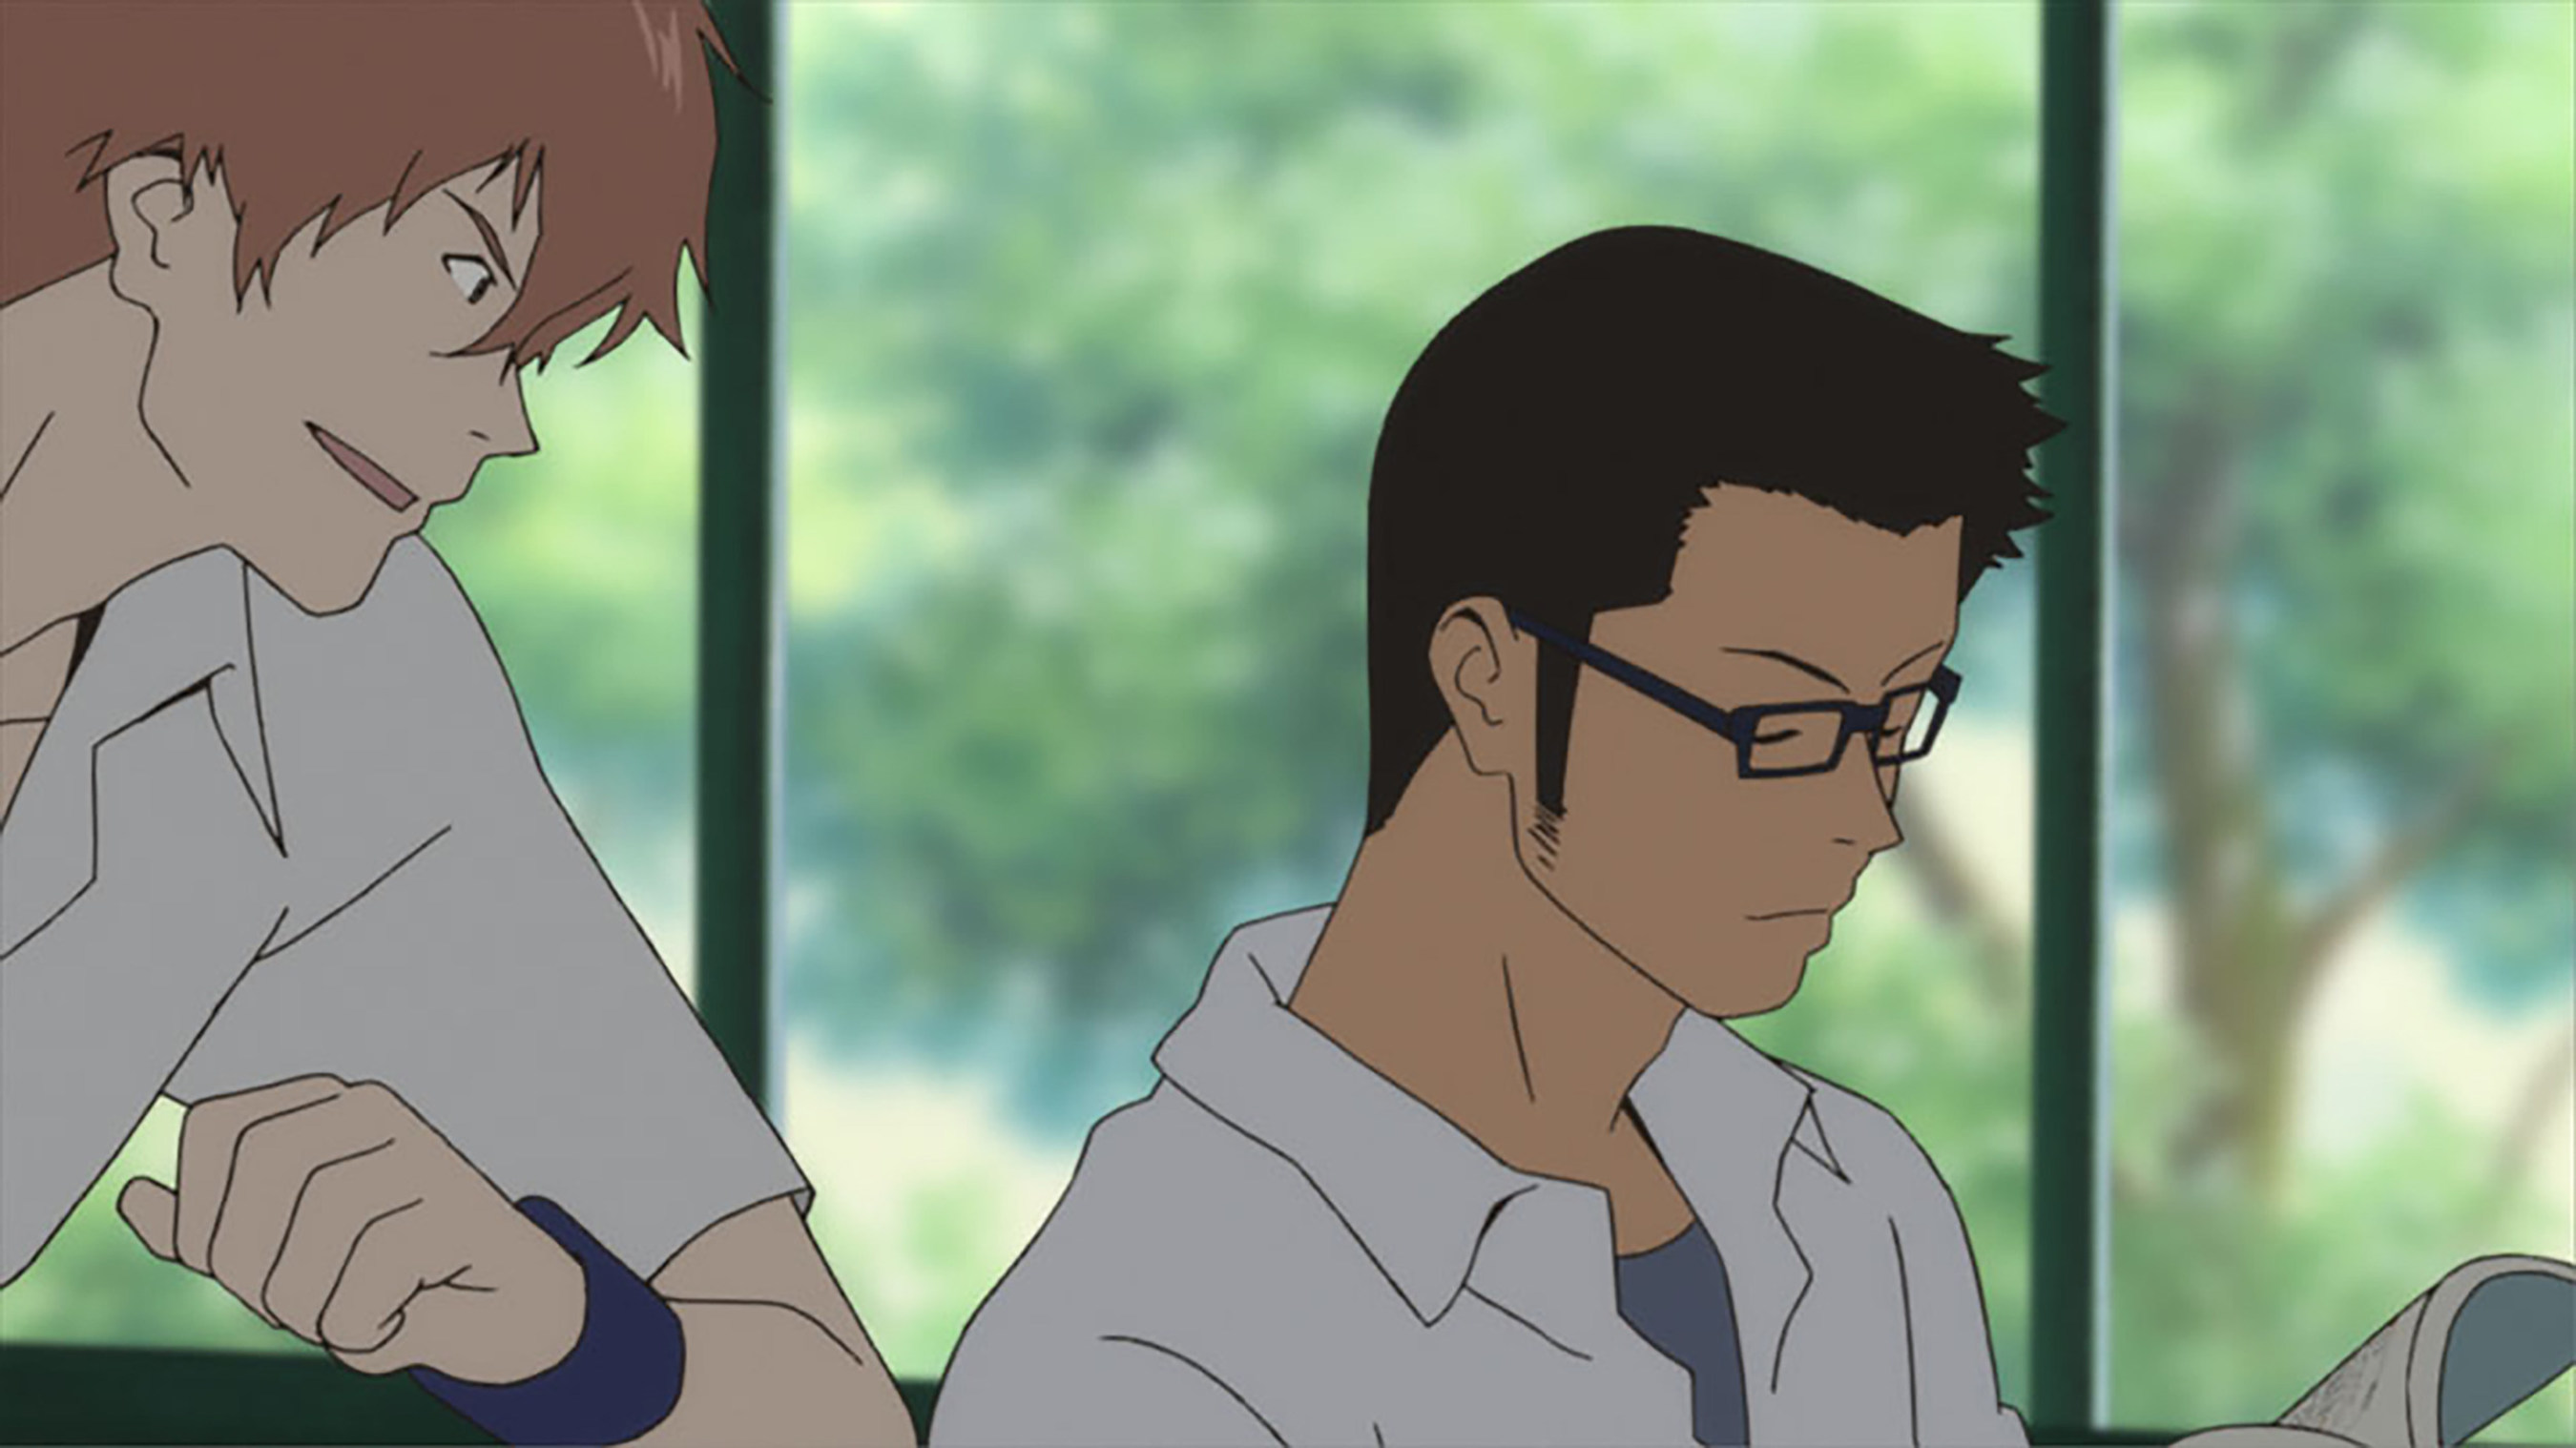 """Still from """"The Girl Who Leapt Through Time"""" - courtesy of Funimation"""